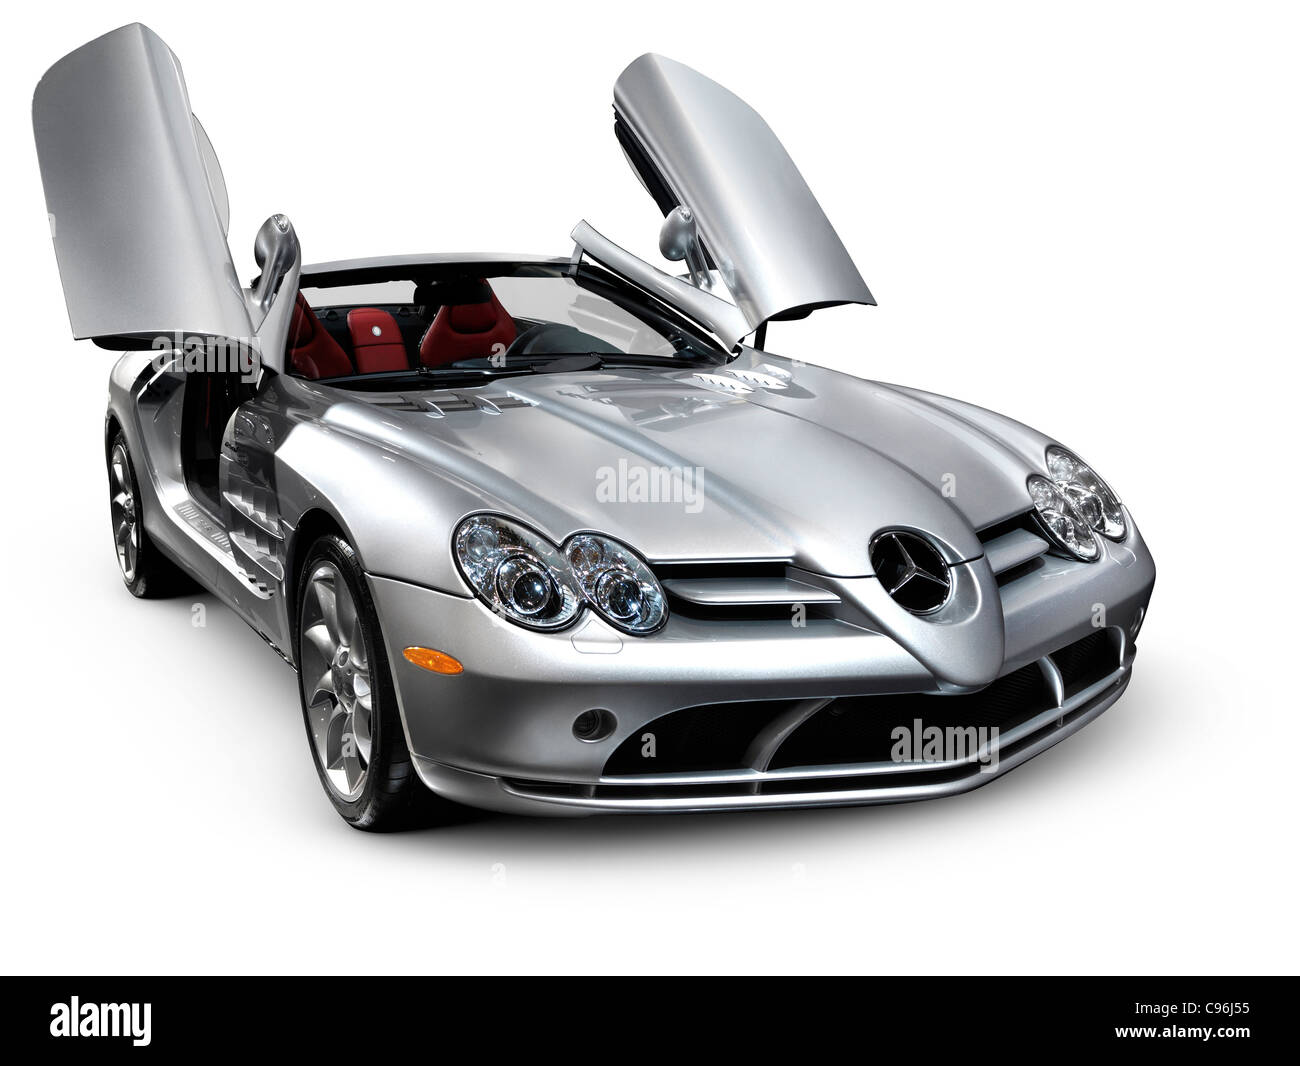 Mercedes Benz SLR McLaren Roadster Anglo German Sports Car Isolated  Silhouette With Clipping Path On White Background